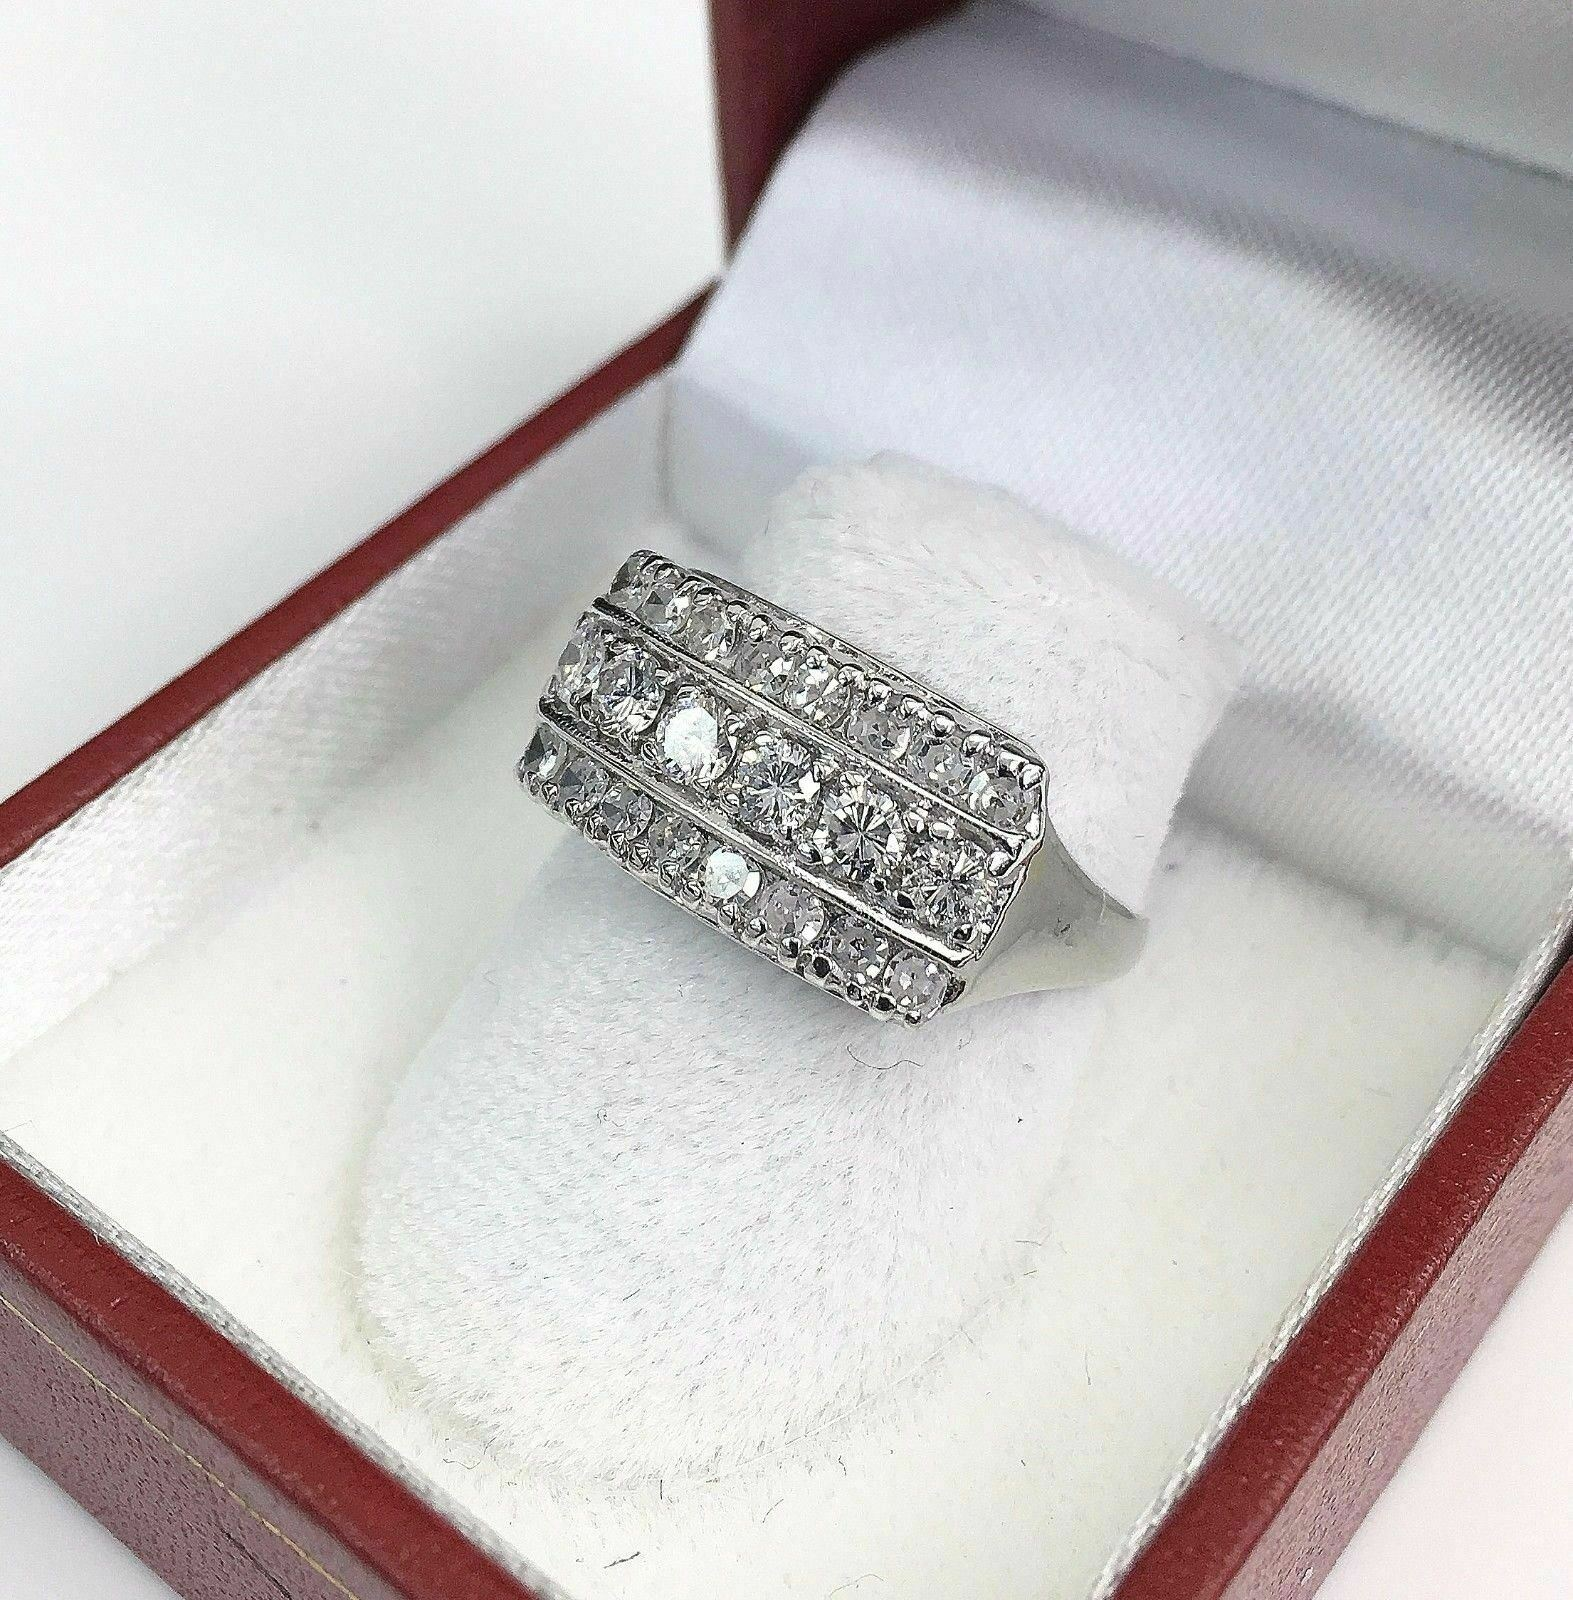 1.40 Carats t.w. Diamond Anniversary/Wedding Ring 14K Gold 3.8 Grams Brand New